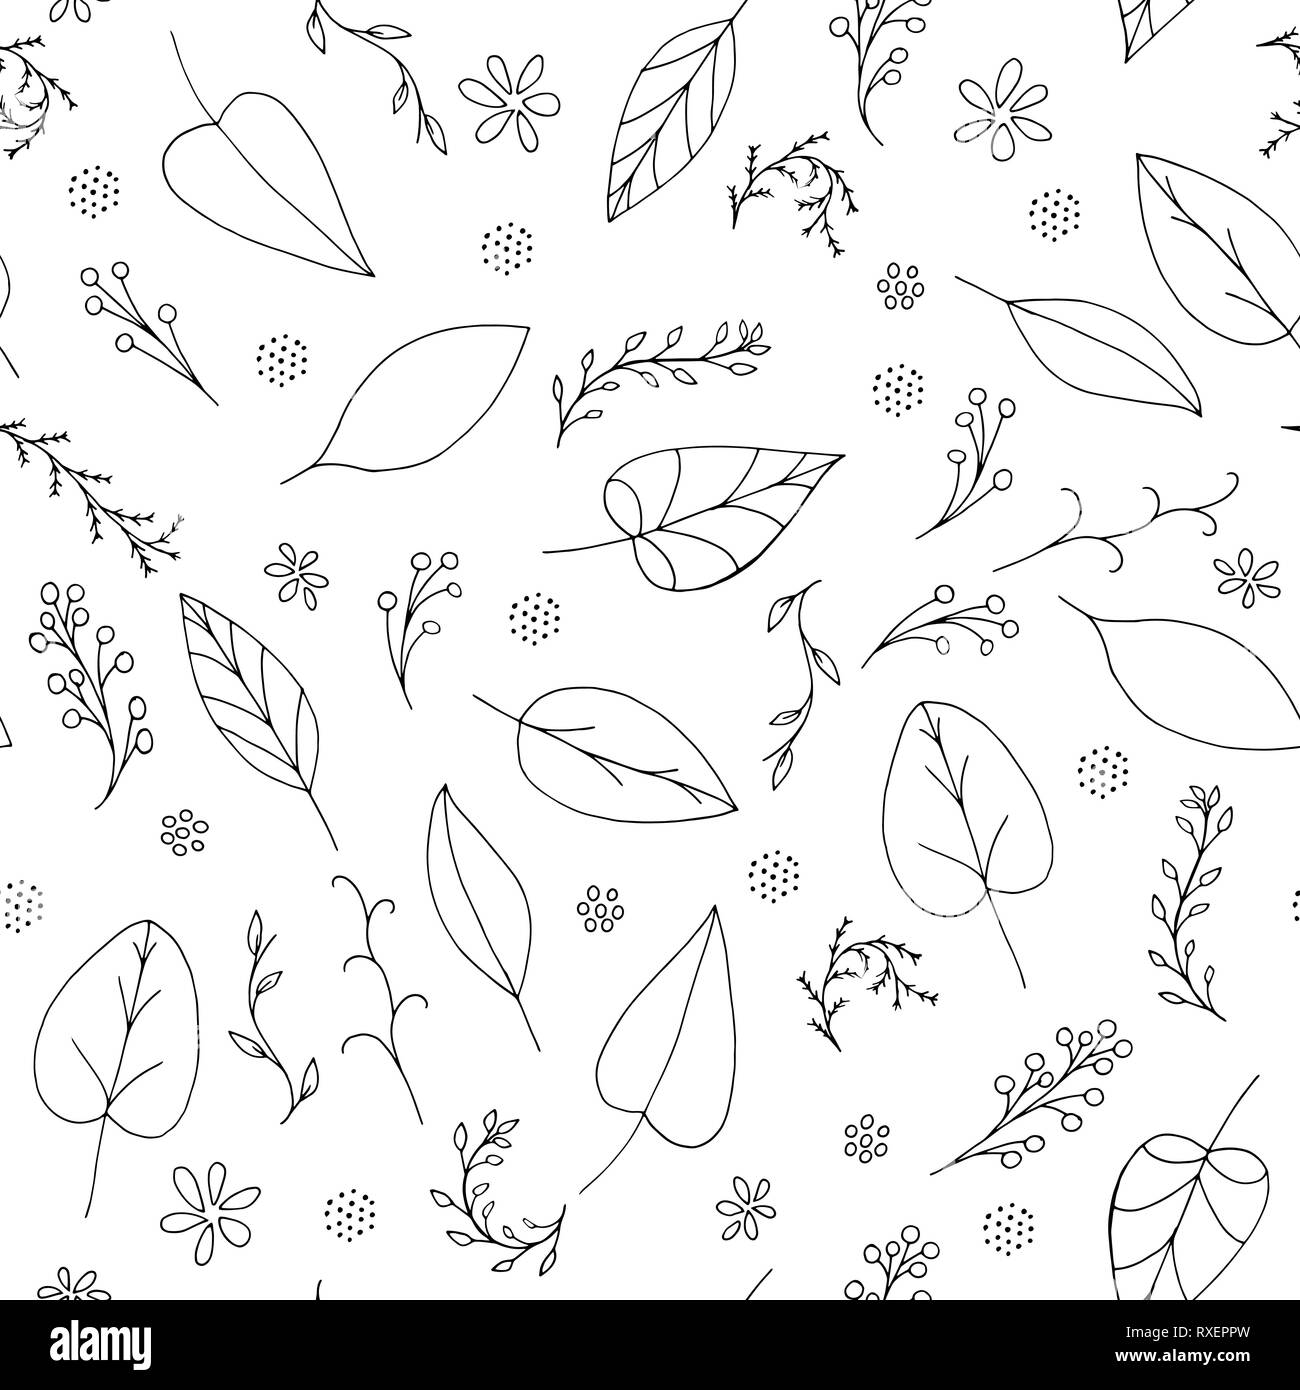 Black Vector Doodle Seamless Pattern With Abstract Leaves